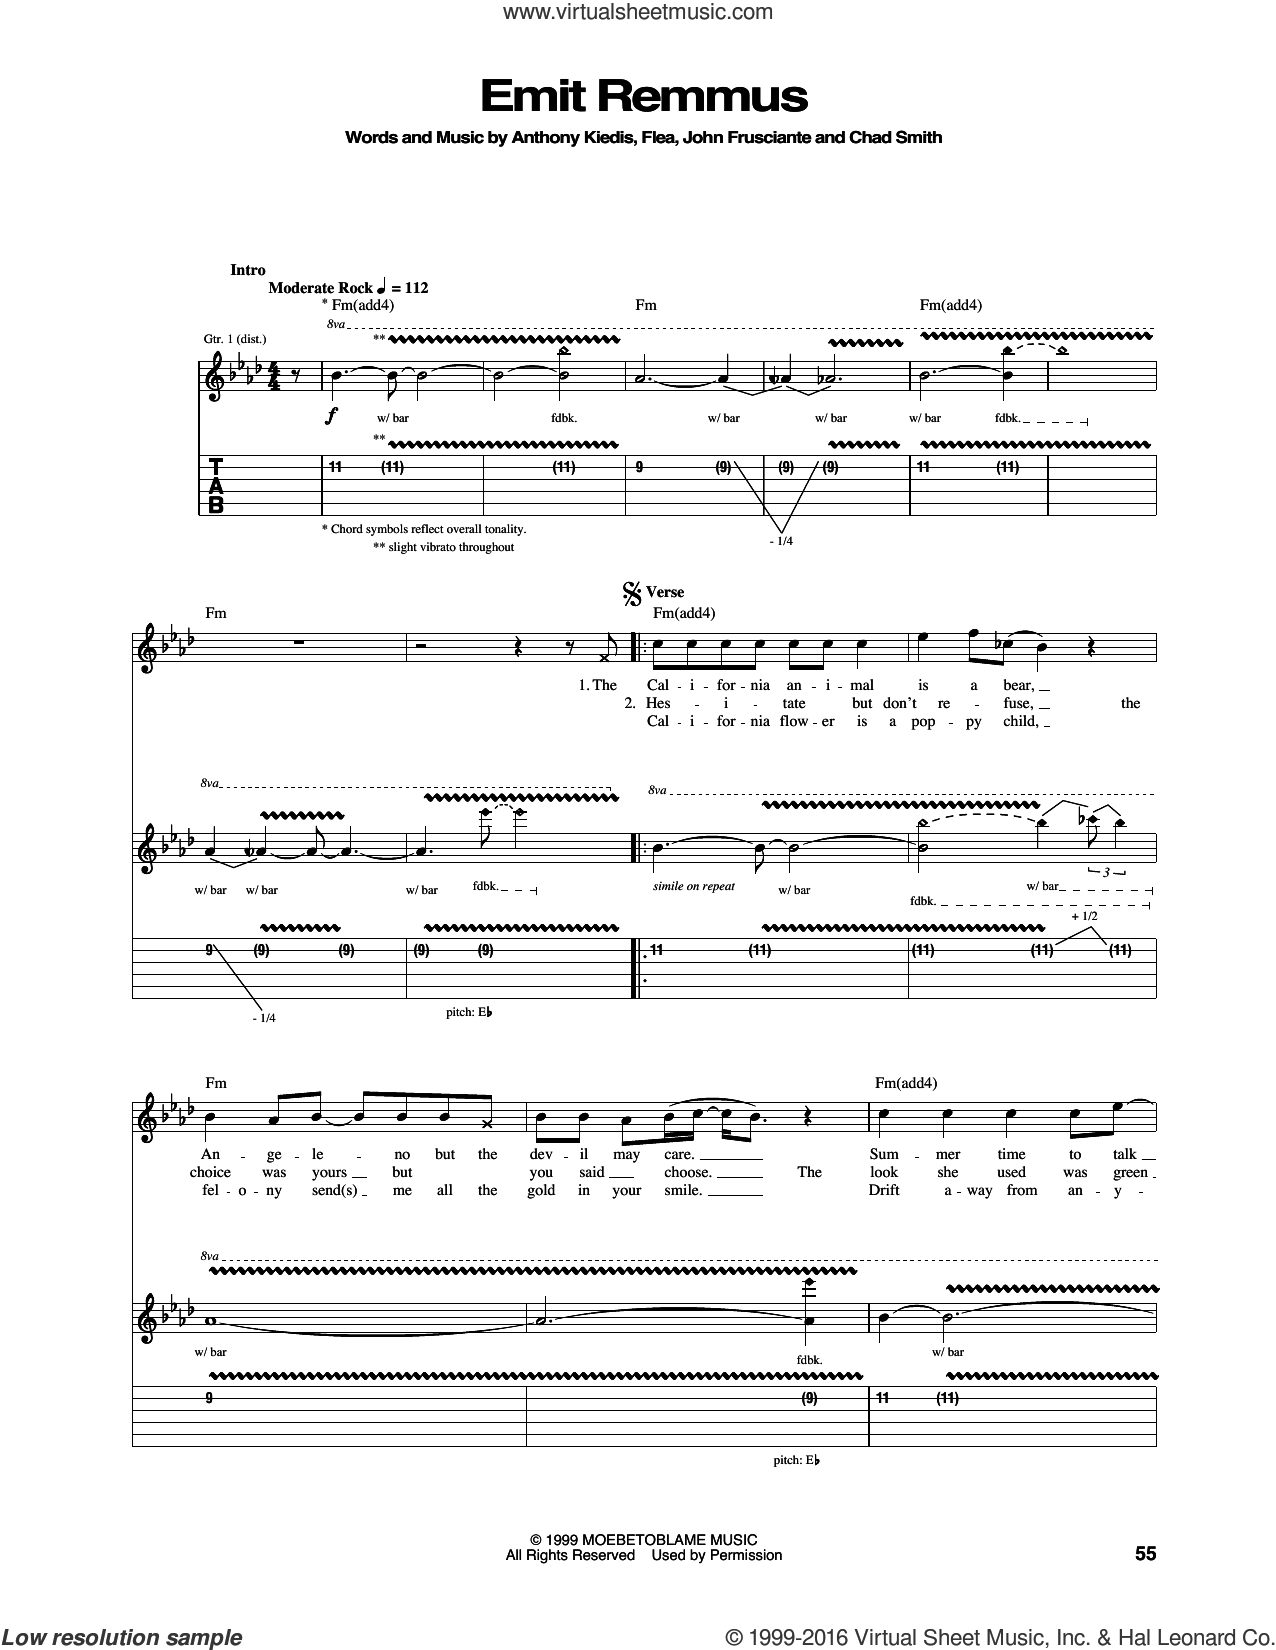 Emit Remmus sheet music for guitar (tablature) by John Frusciante